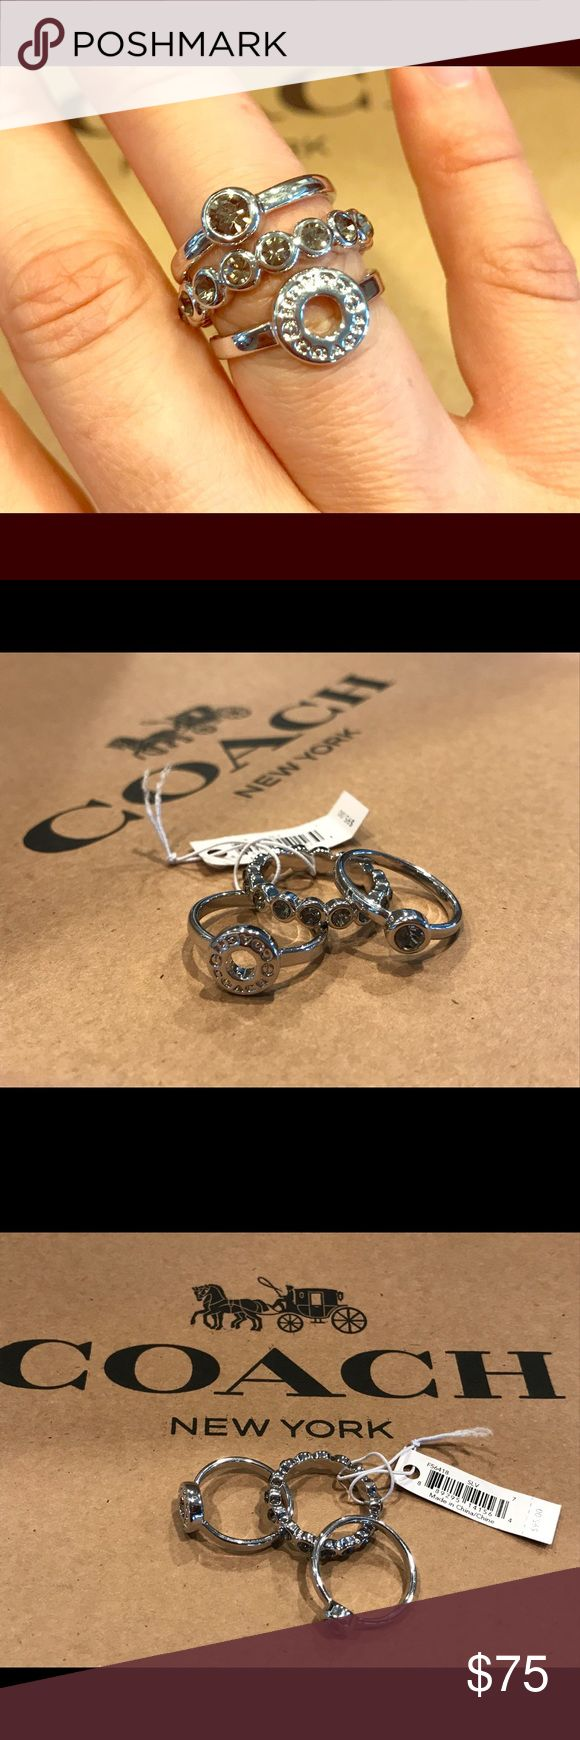 Coach Circle Ring Set Authentic and new in box. Very sparkly. Set of 3. Silver tone. Coach Jewelry Rings